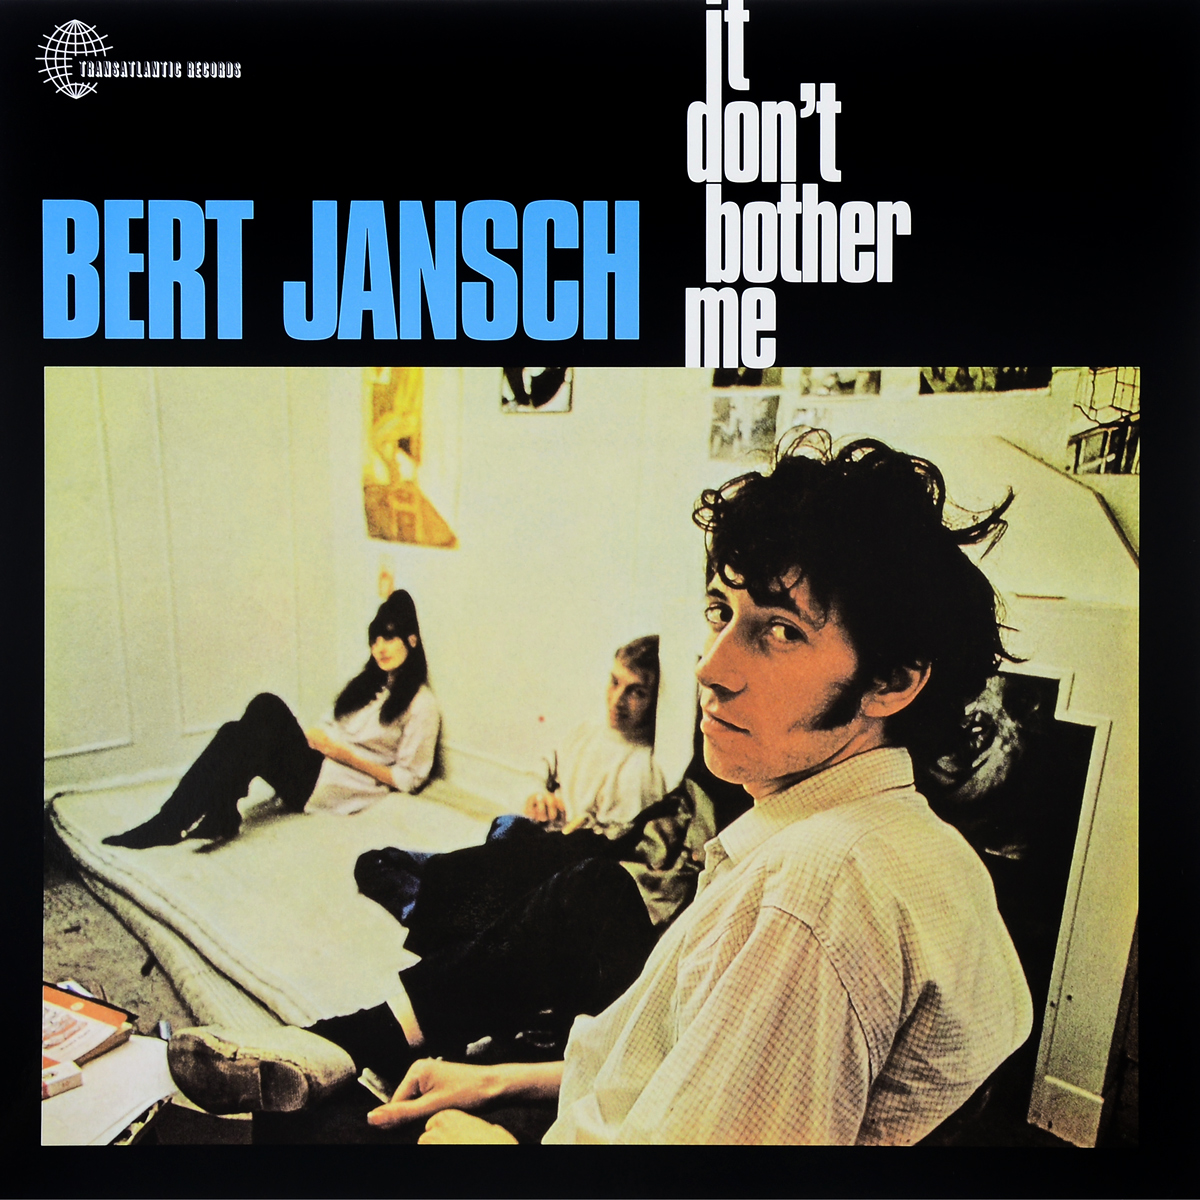 Берт Дженч Bert Jansch. It Don't Bother Me (LP) берт дженч bert jansch it don t bother me